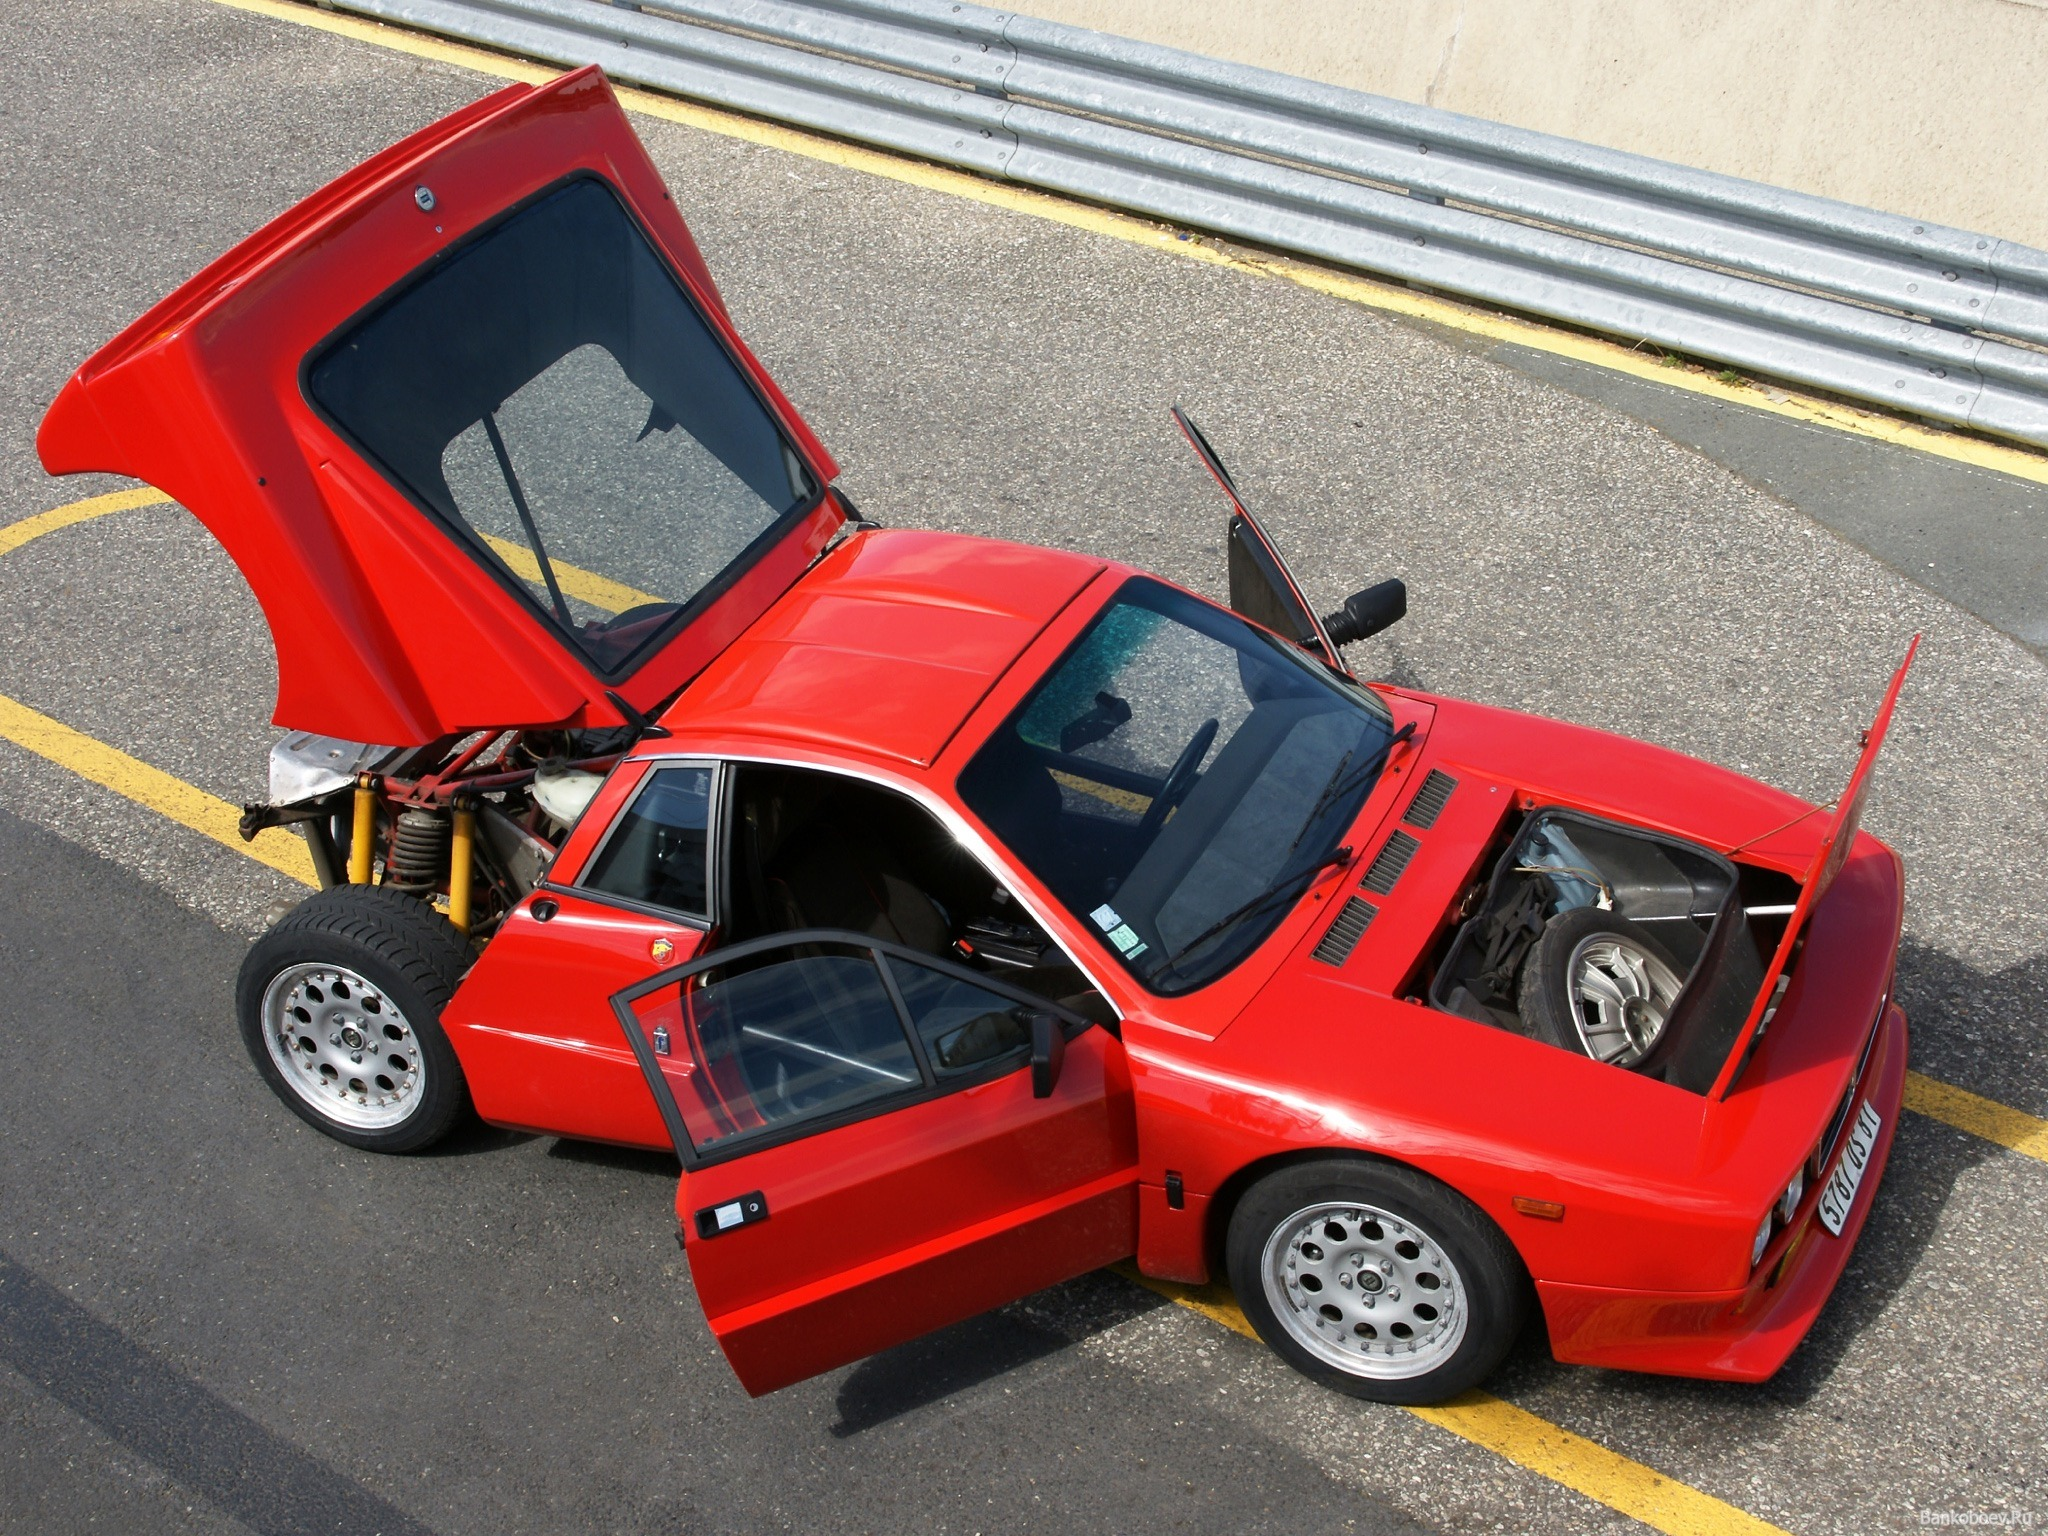 http://oldconceptcars.com/wp-content/uploads/lancia_rally_037_stradale_concept_3.jpg